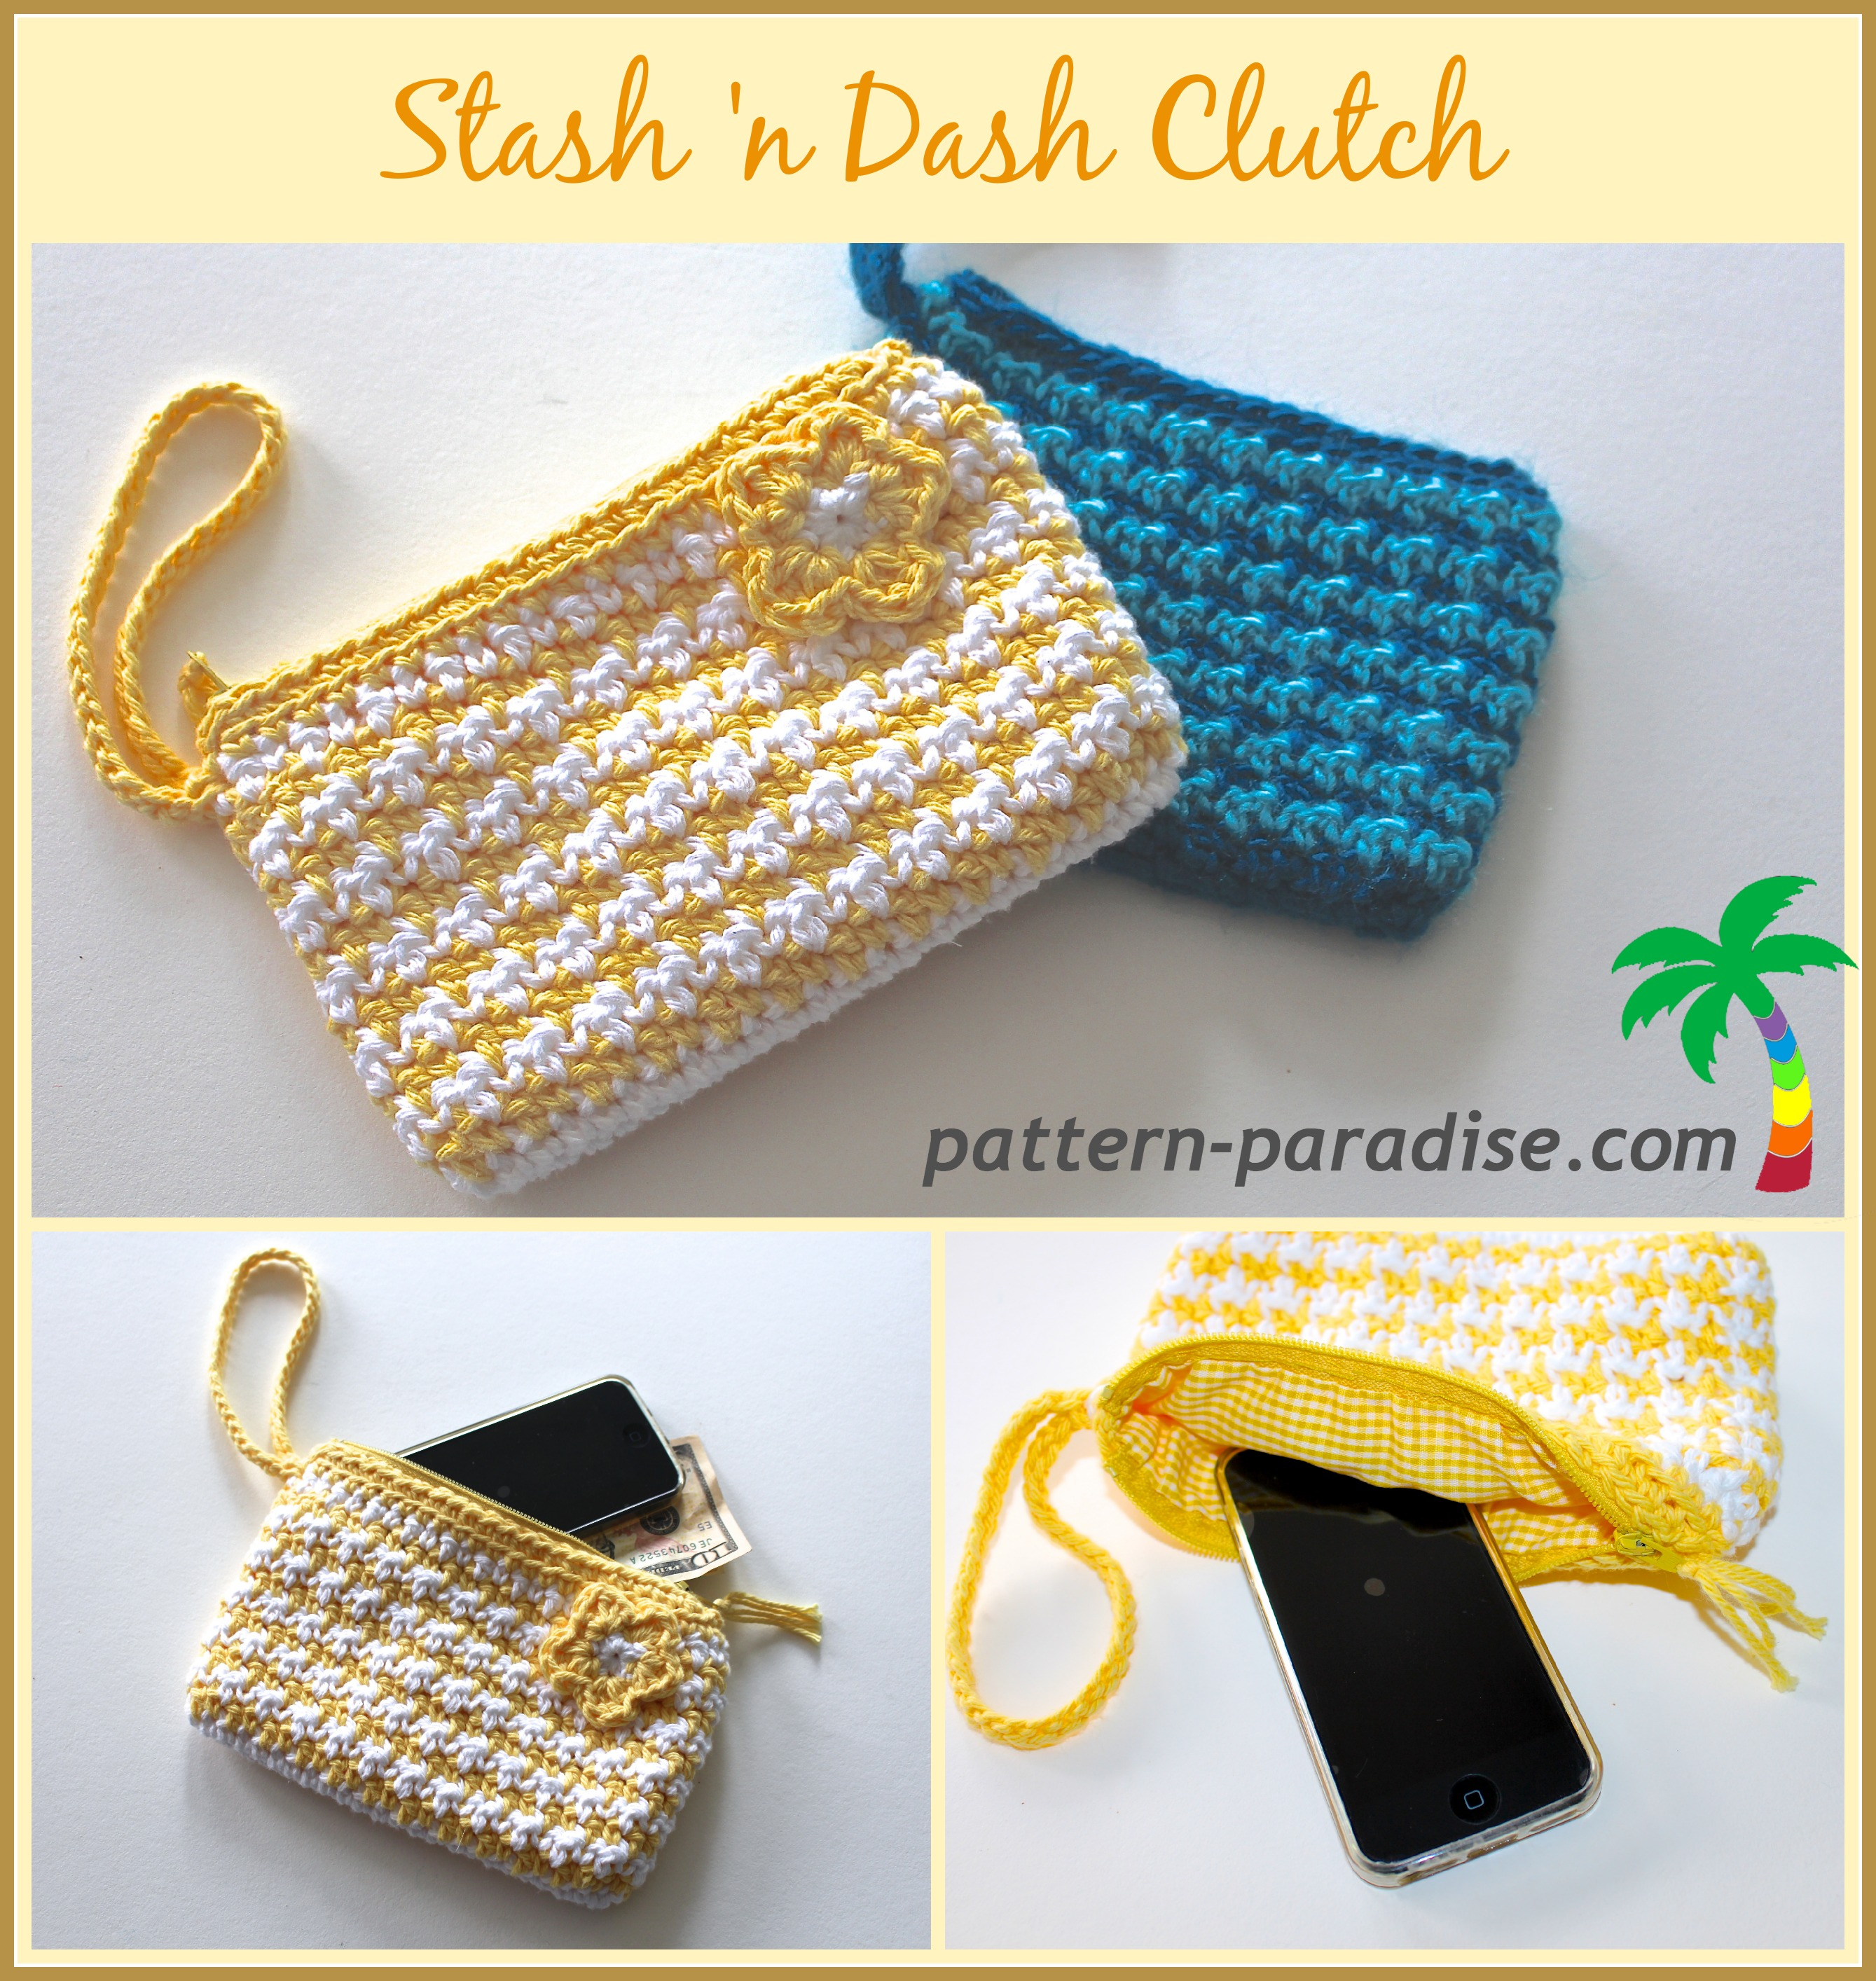 Free Crochet Clutch Pattern : FREE Crochet Pattern - Stash n Dash Clutch Pattern Paradise